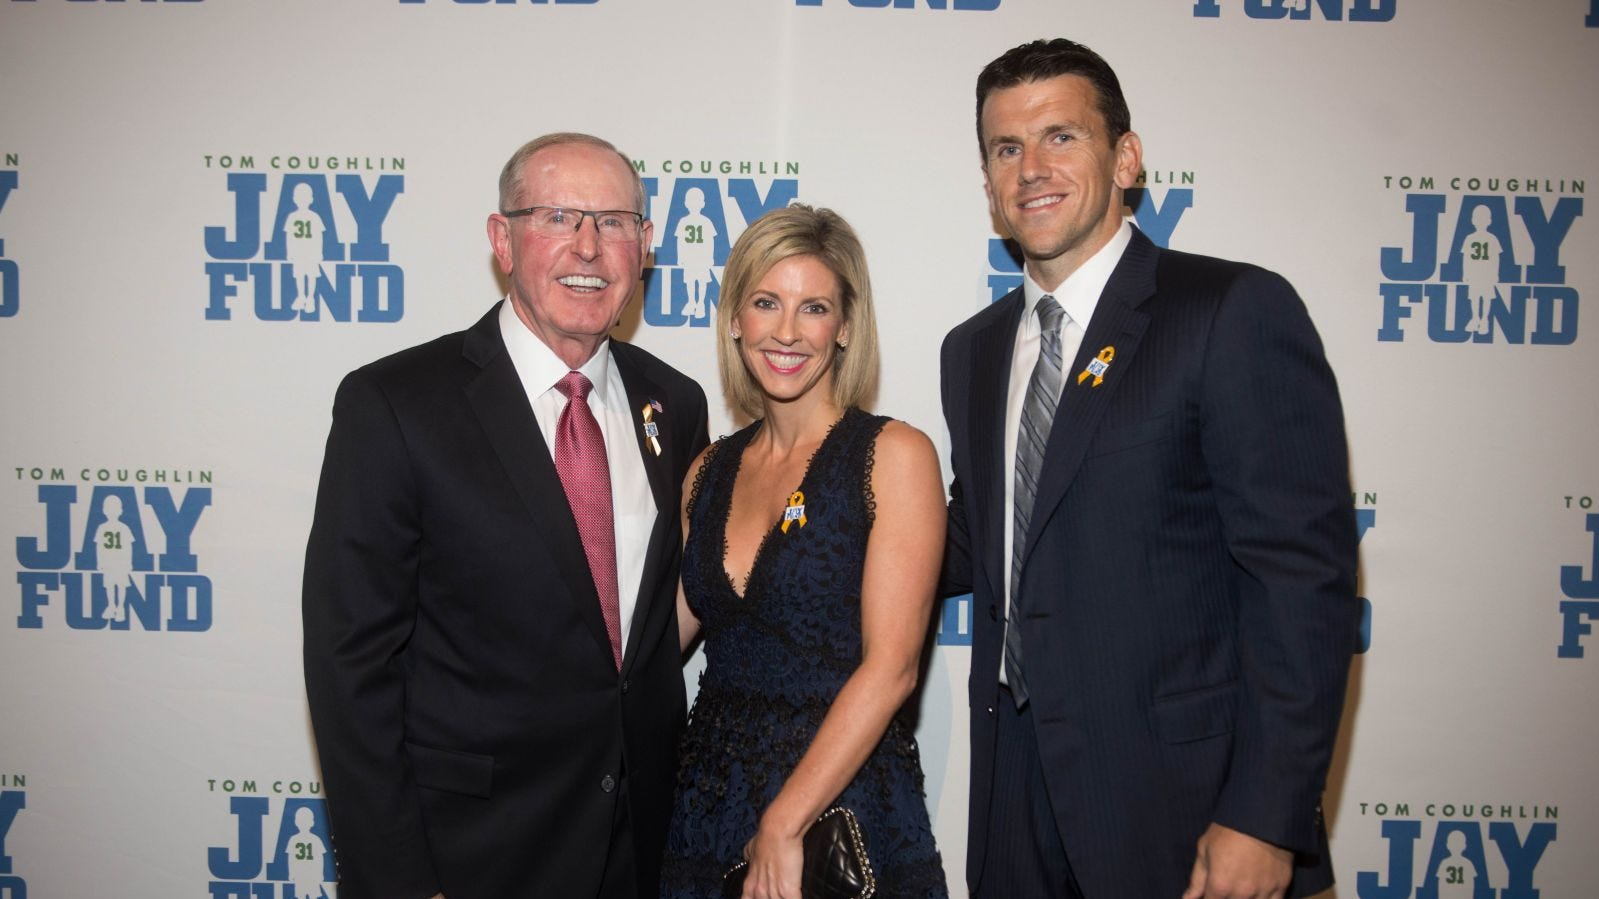 Tom Coughlin, Kate Snee and Chris Snee. The 14th...